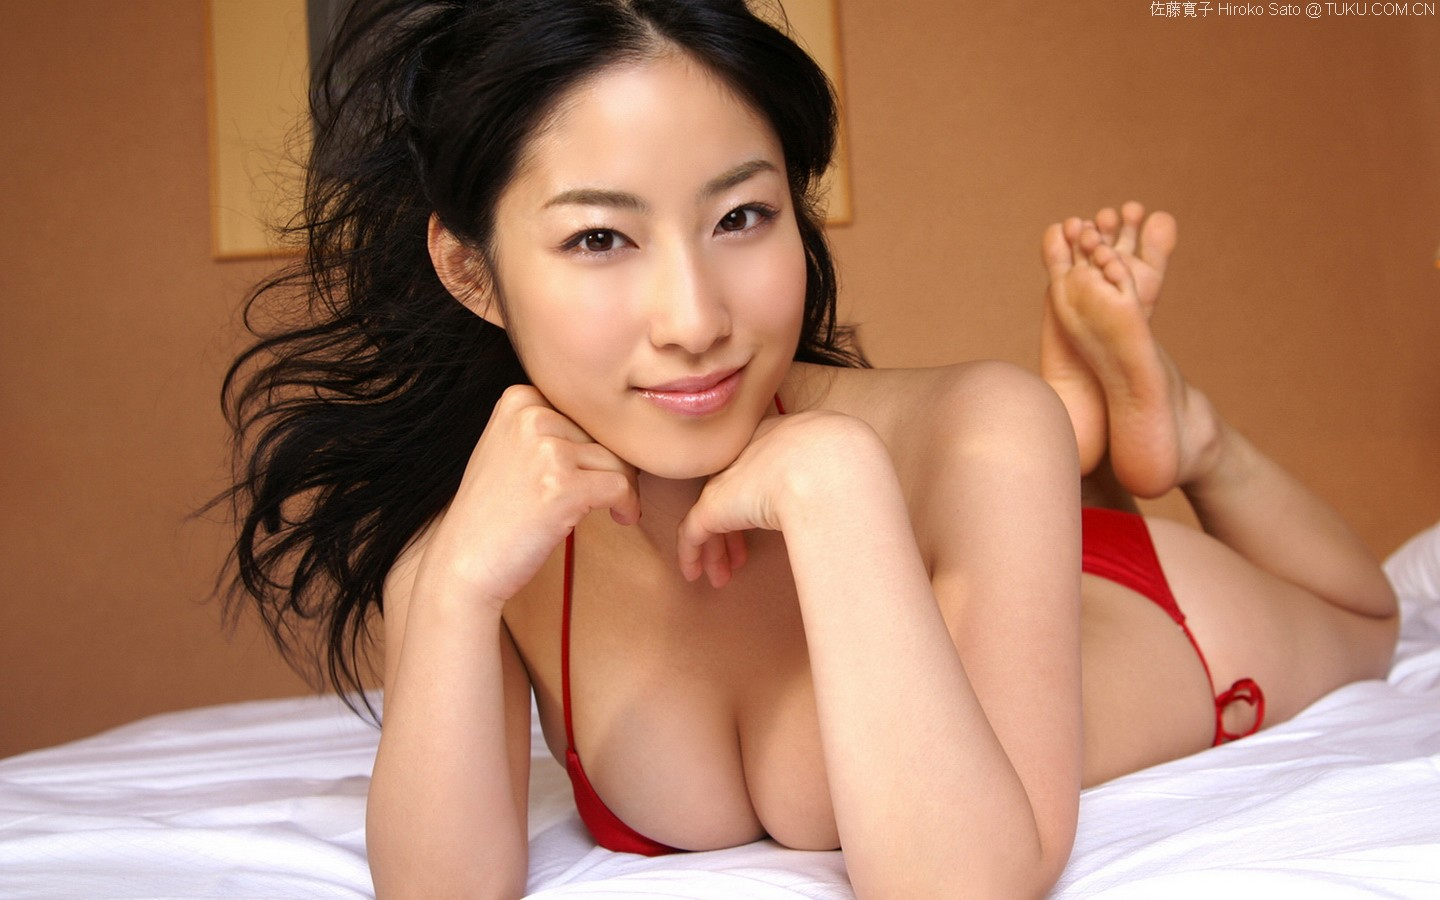 Asian looking sex woman